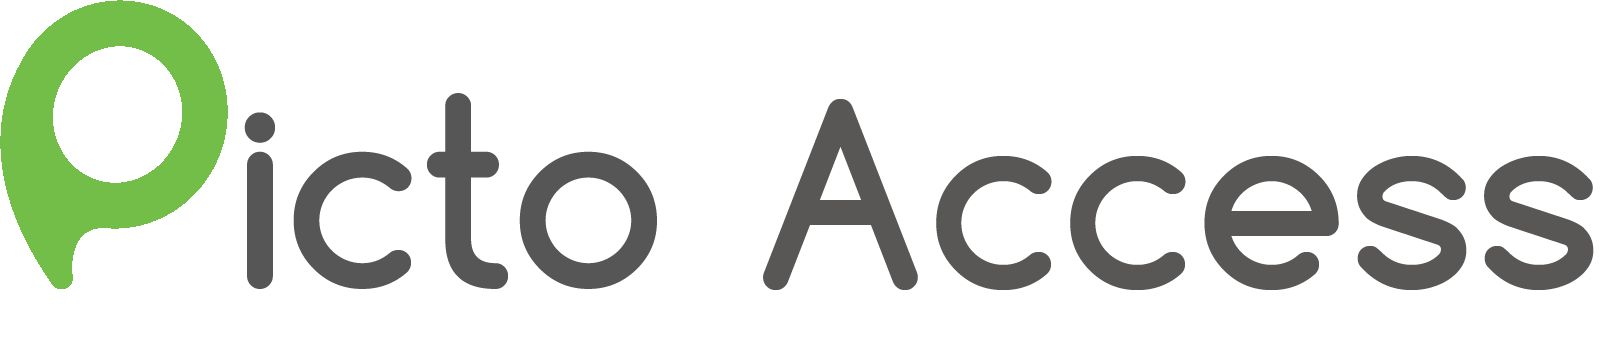 logo PictoAccess